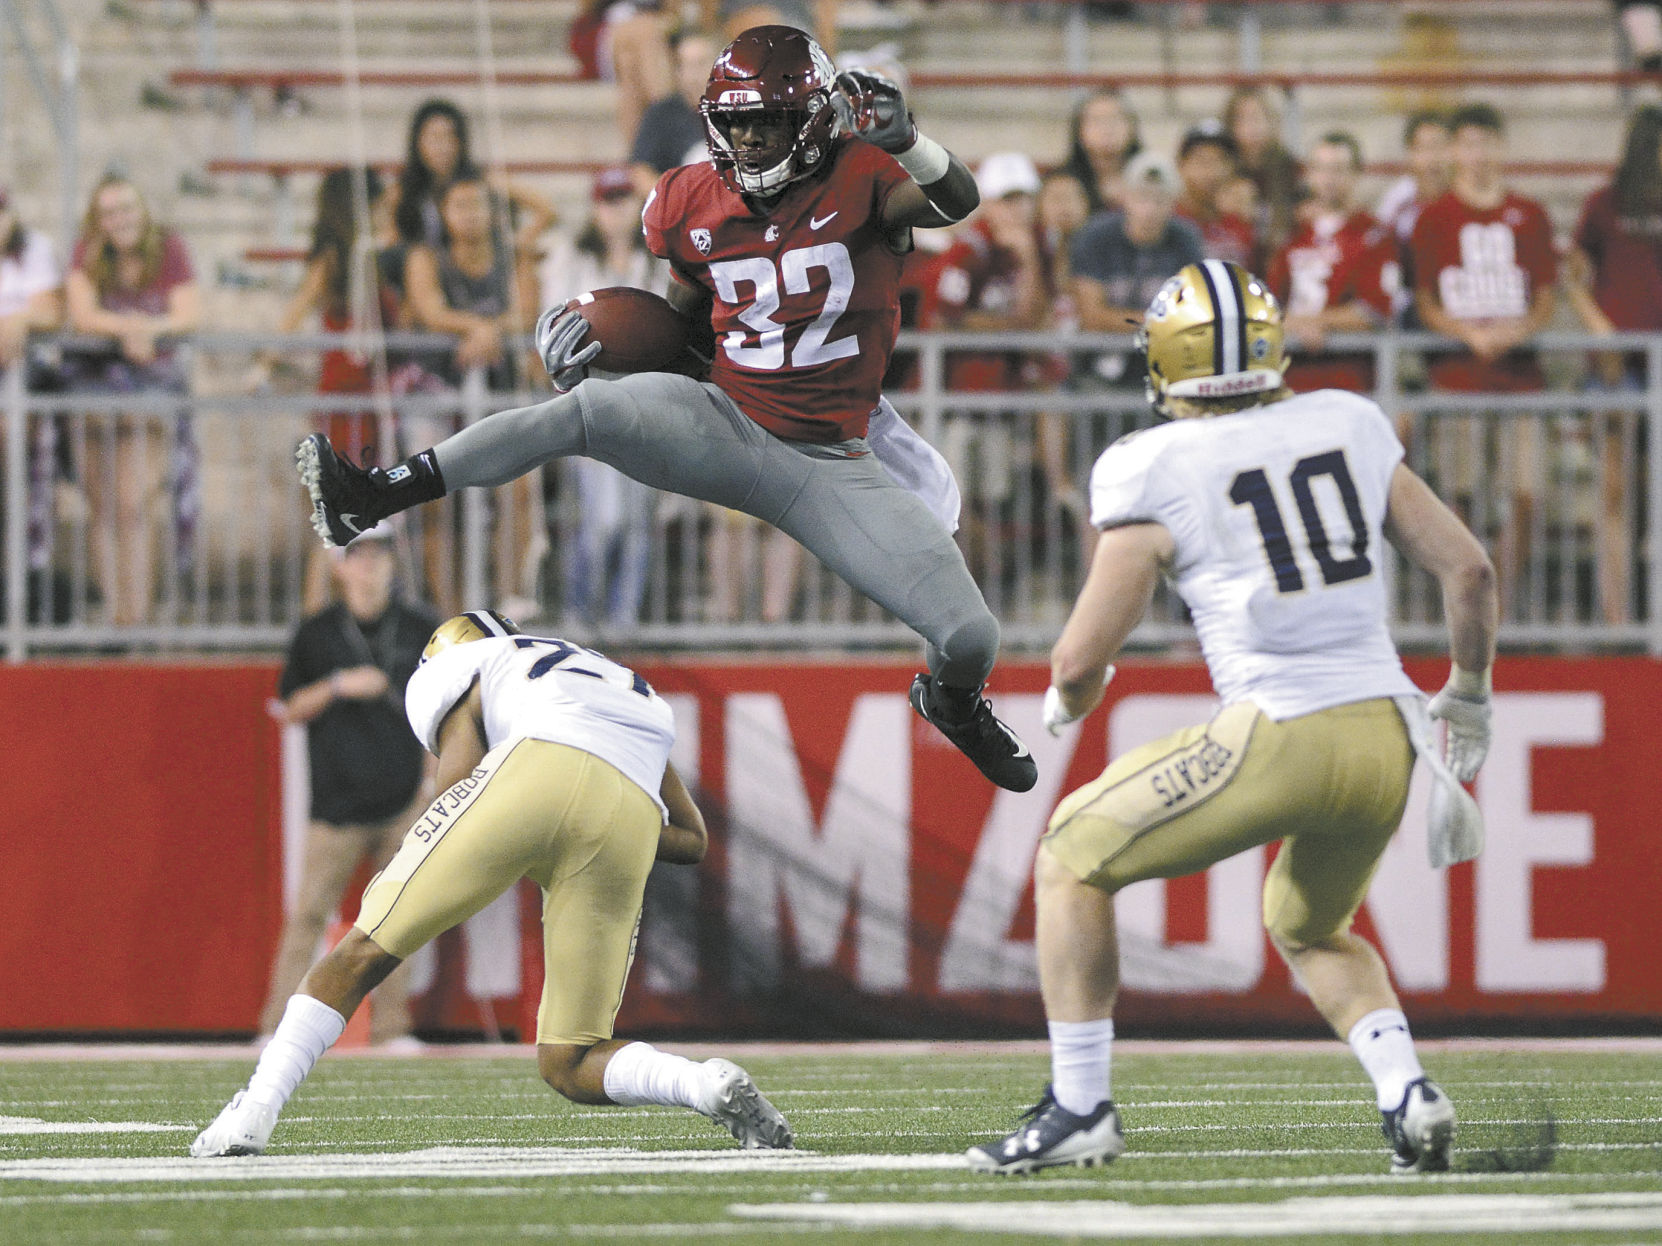 Cougs snap season-opener skid, beat Montana St. 31-0